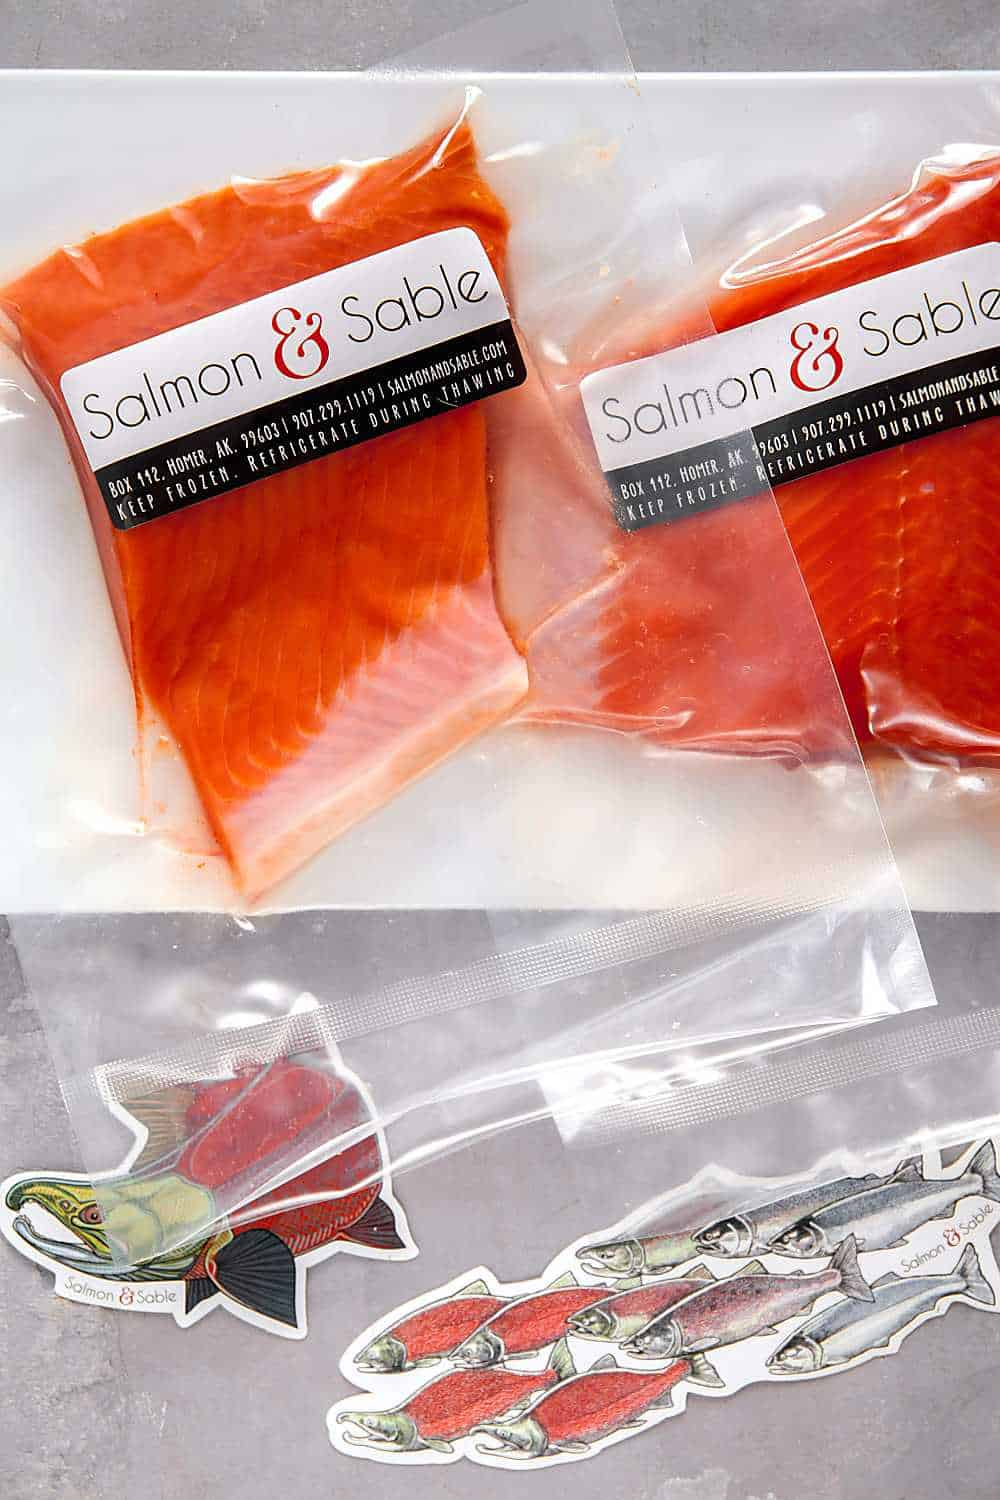 wild Alaskan salmon filets